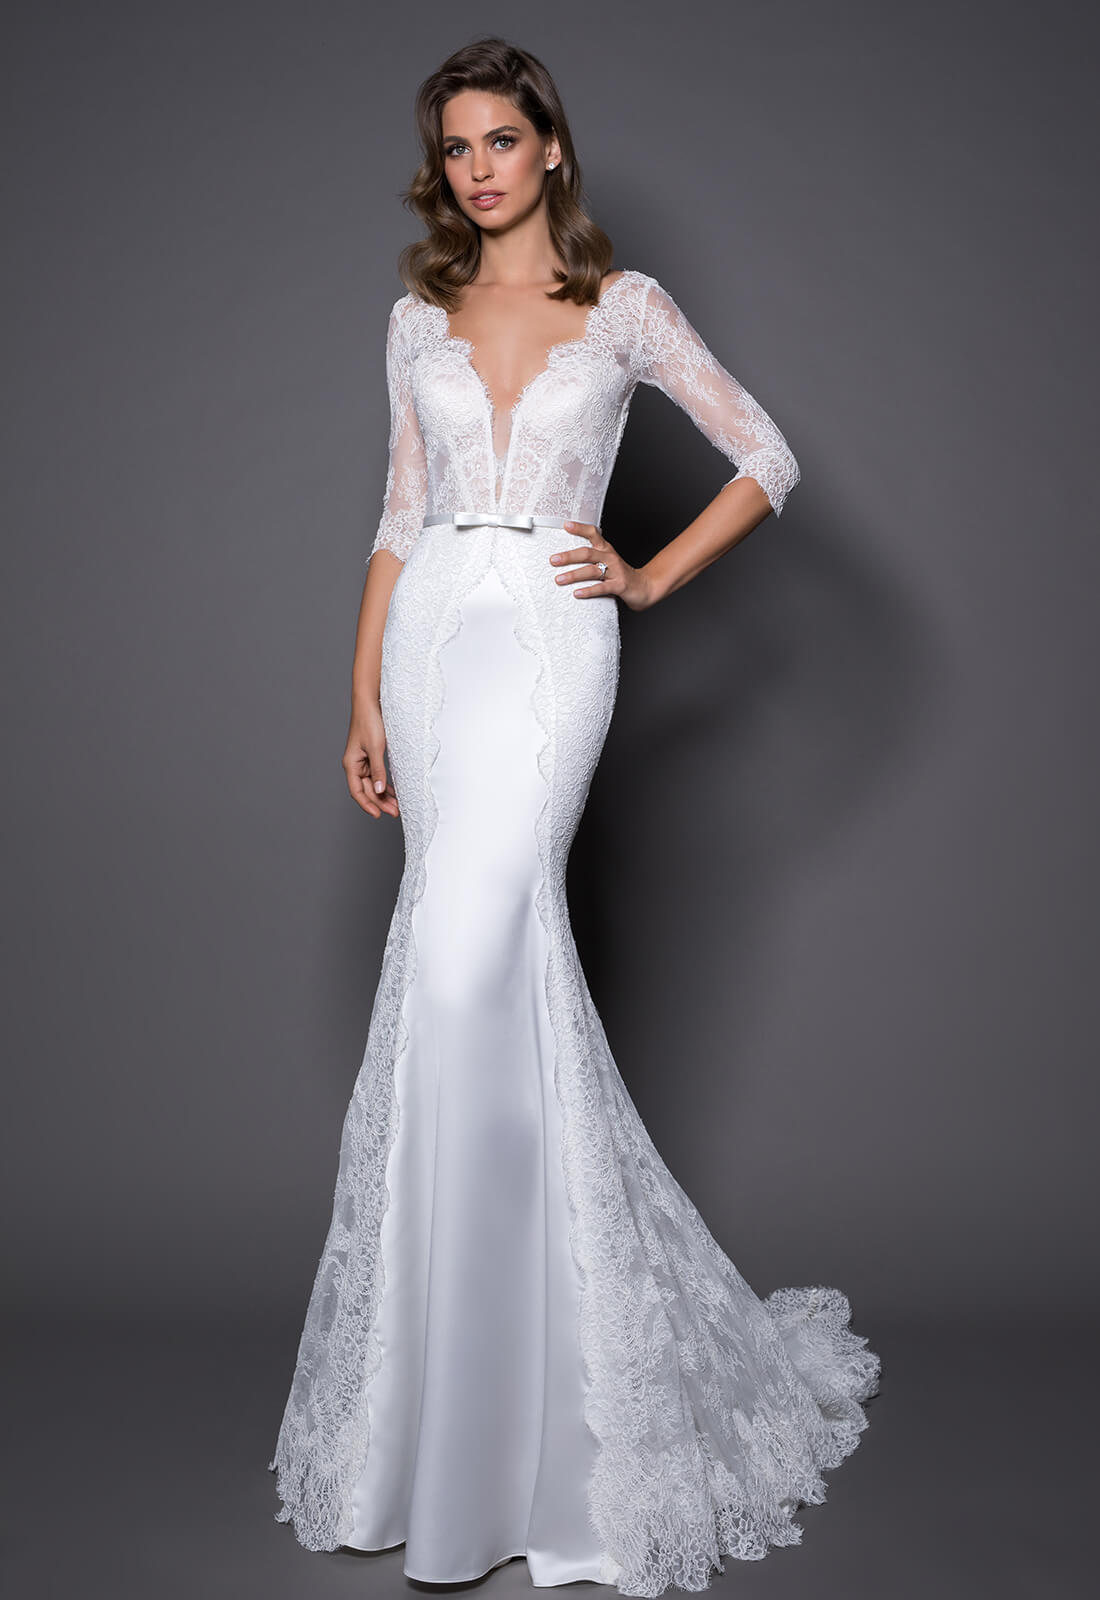 3/4 Sleeve Lace And Satin Wedding Dress With Covered Buttons At Back ...